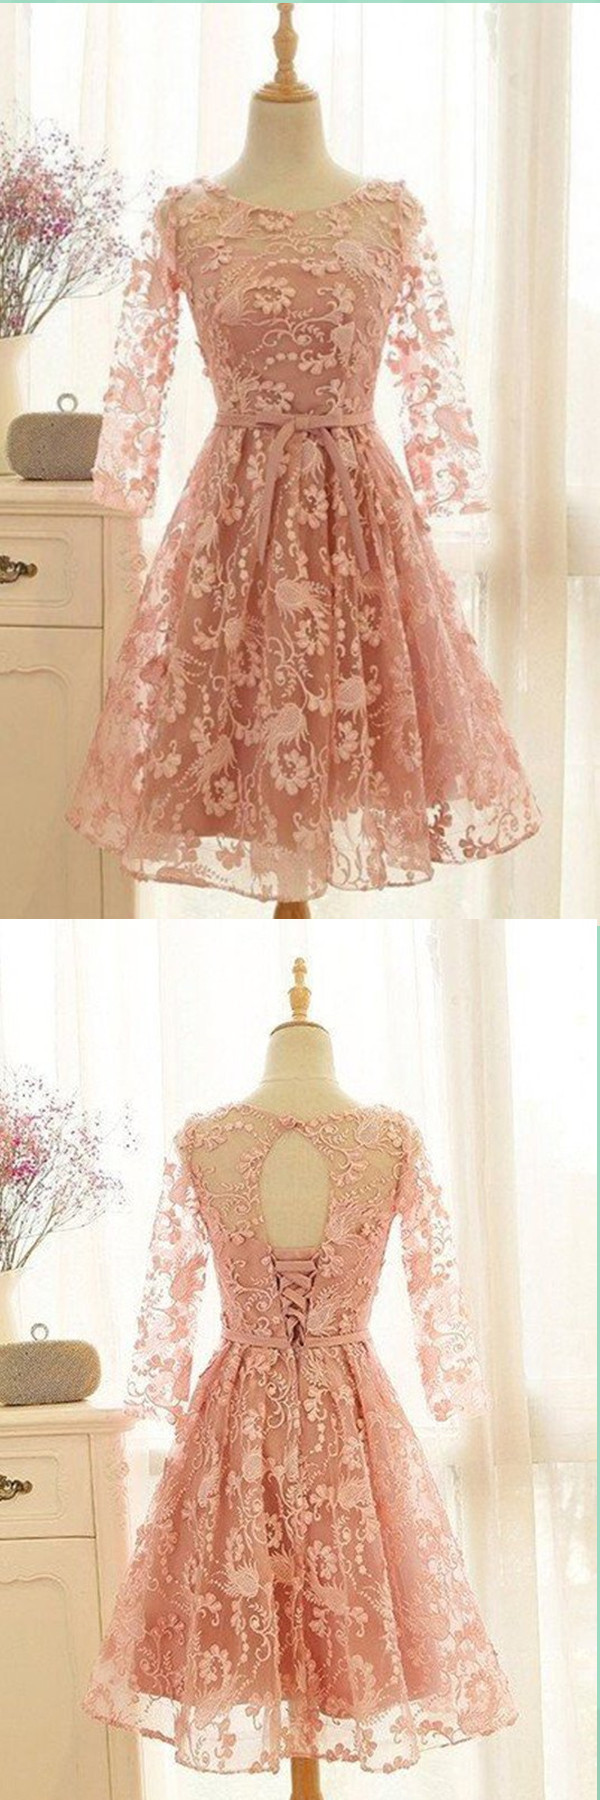 Awesome peach full sleeves prom dress froks pinterest dresses